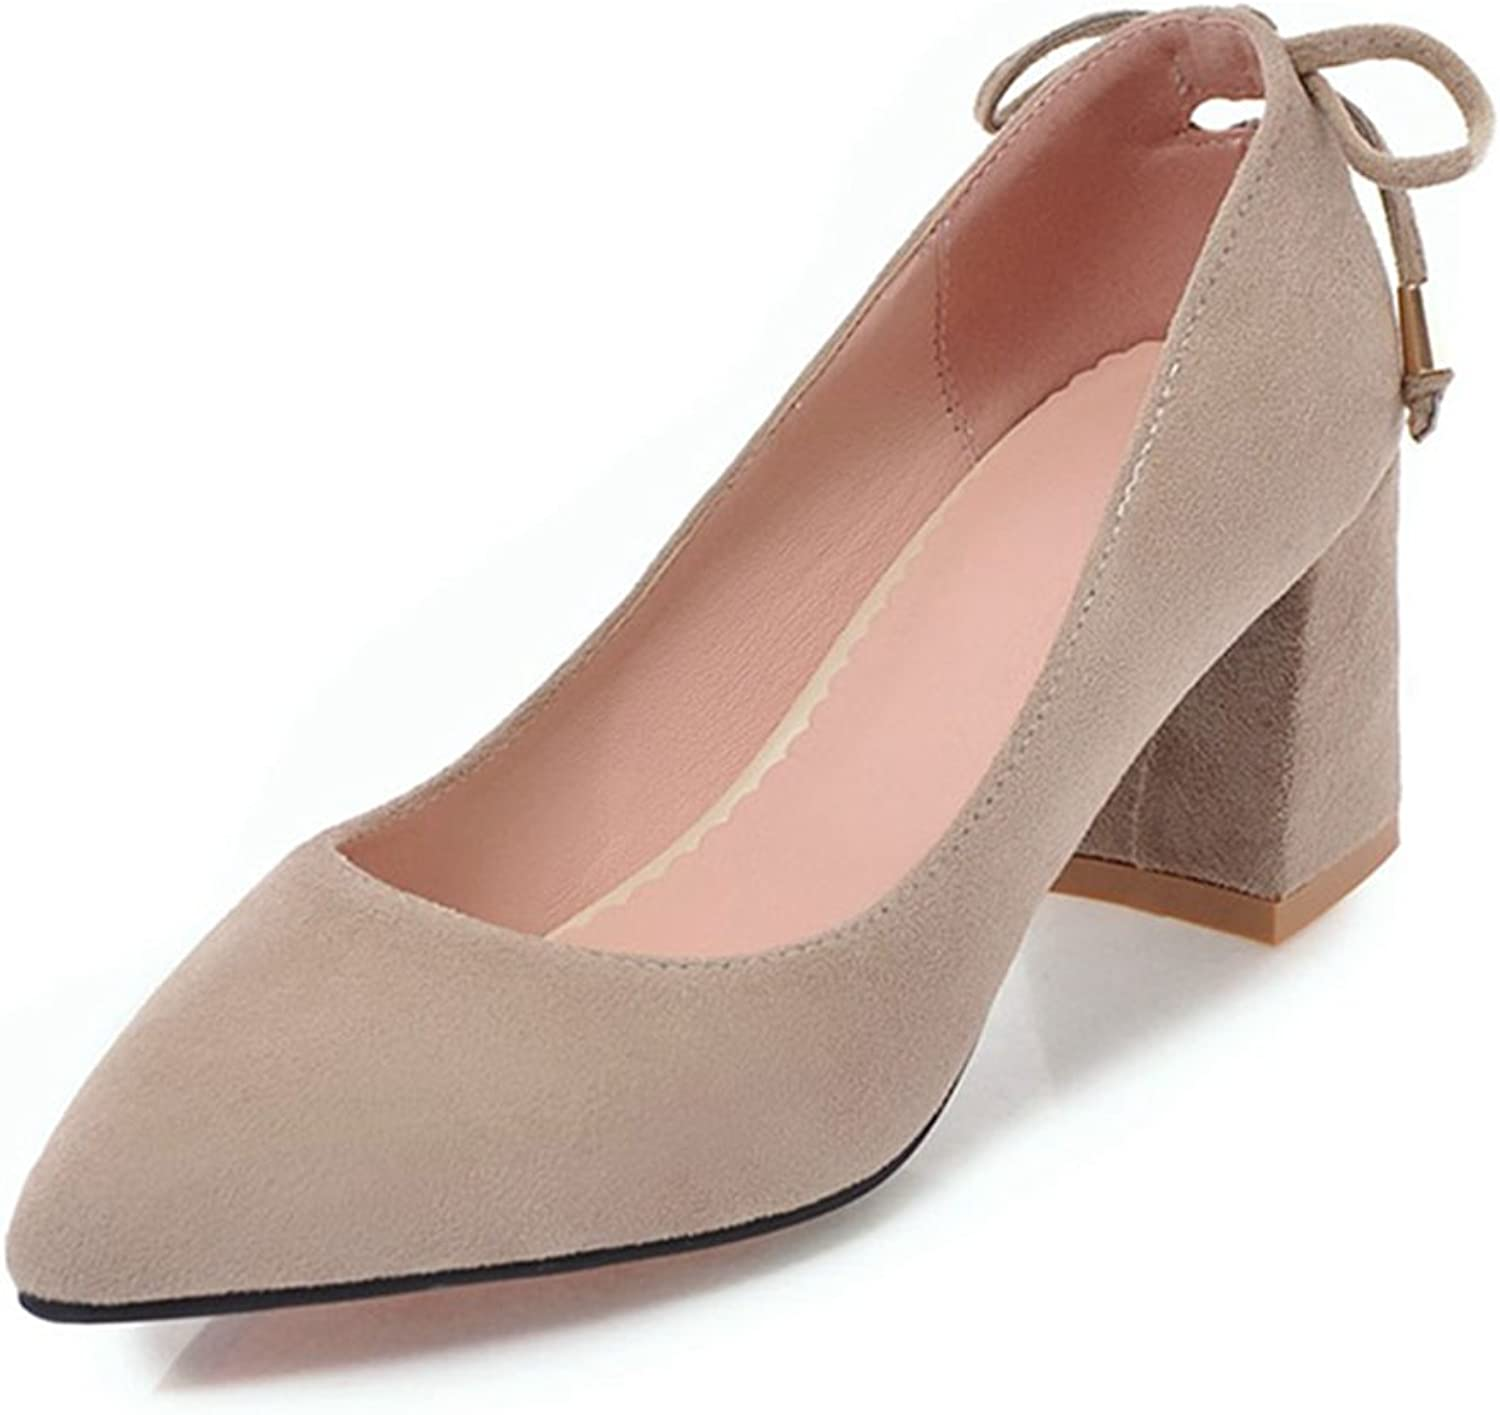 York Zhu Women Pumps, Sexy Flock Bow-Knot Pointed Toe Thin Heel Slip-on shoes